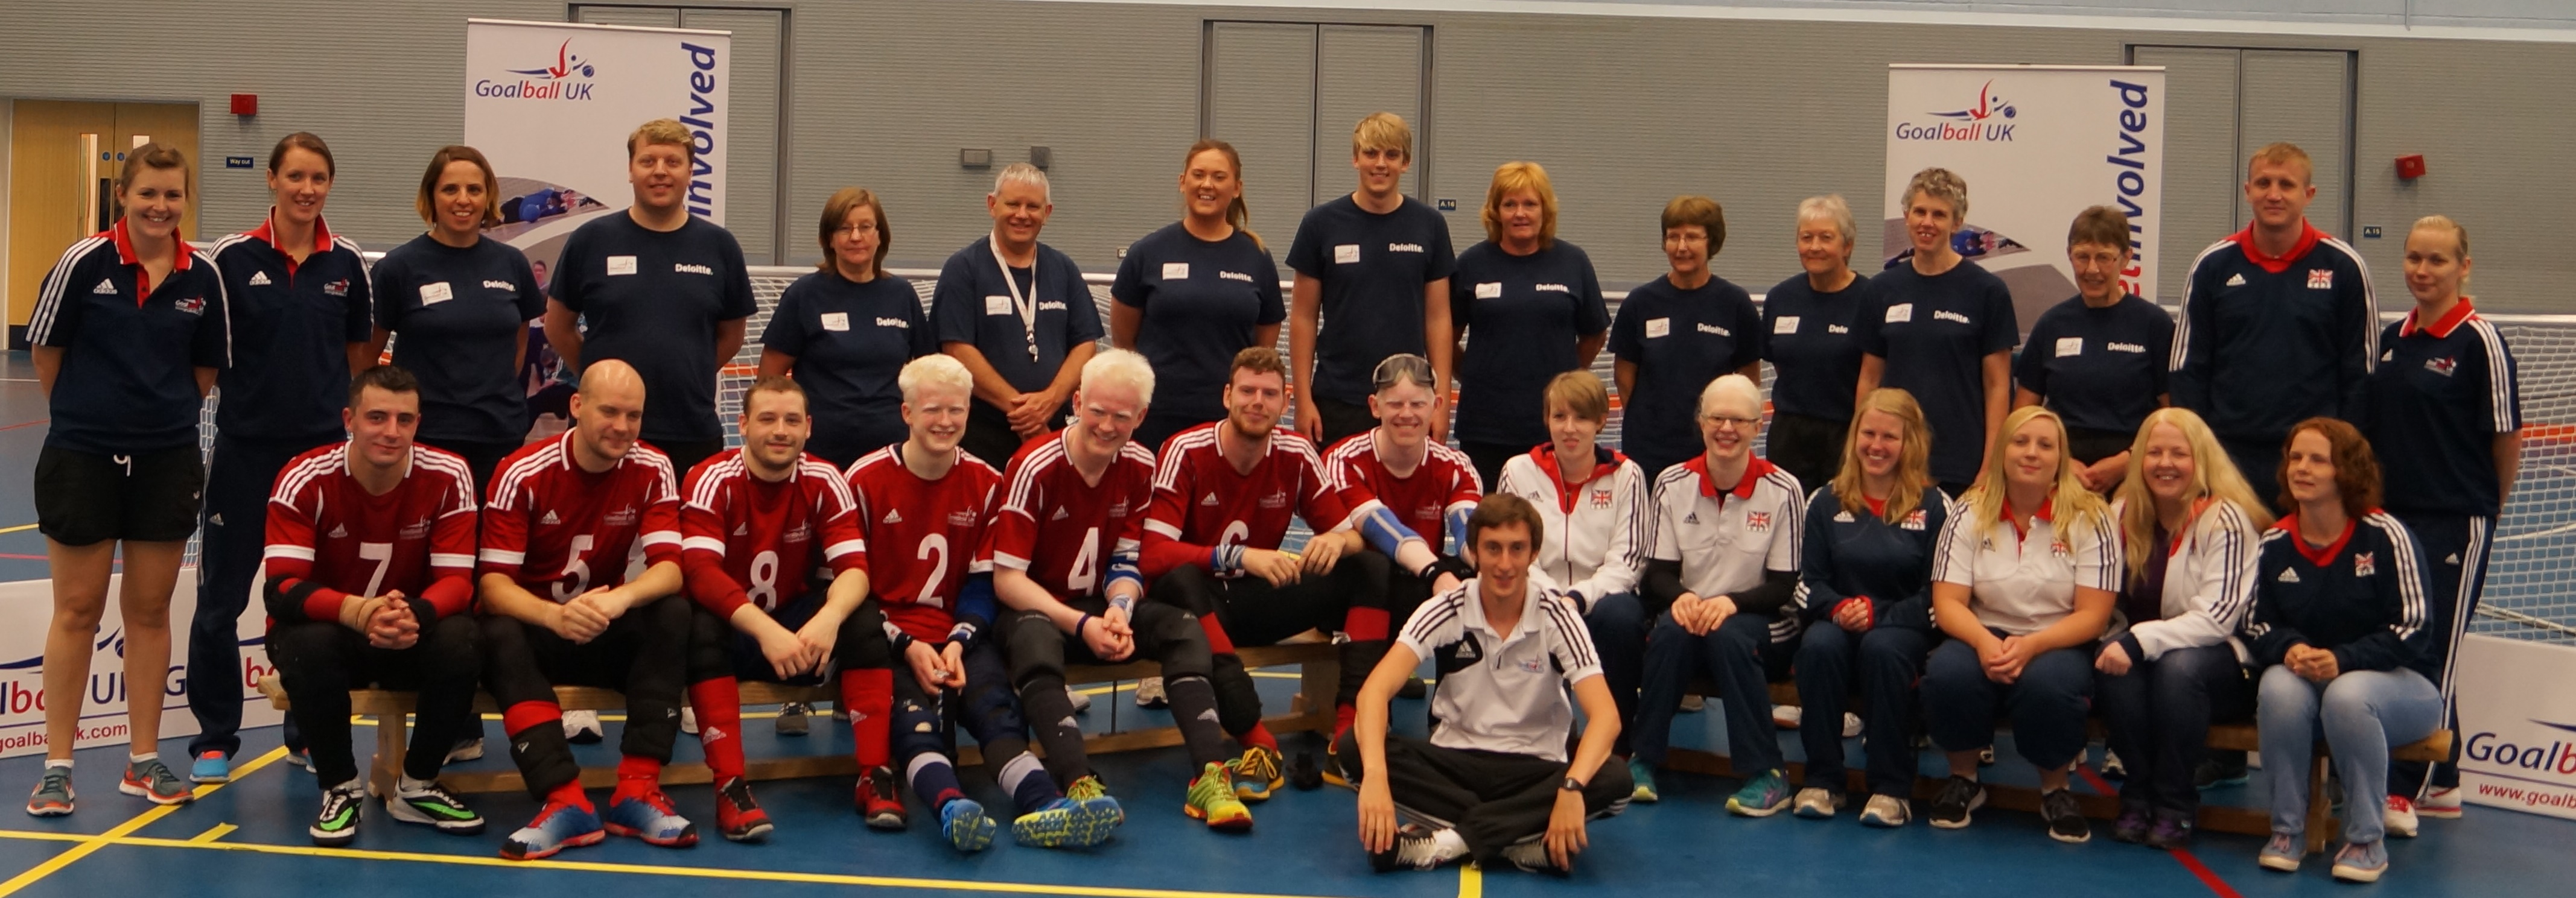 Goalball UK International Tournament 2014